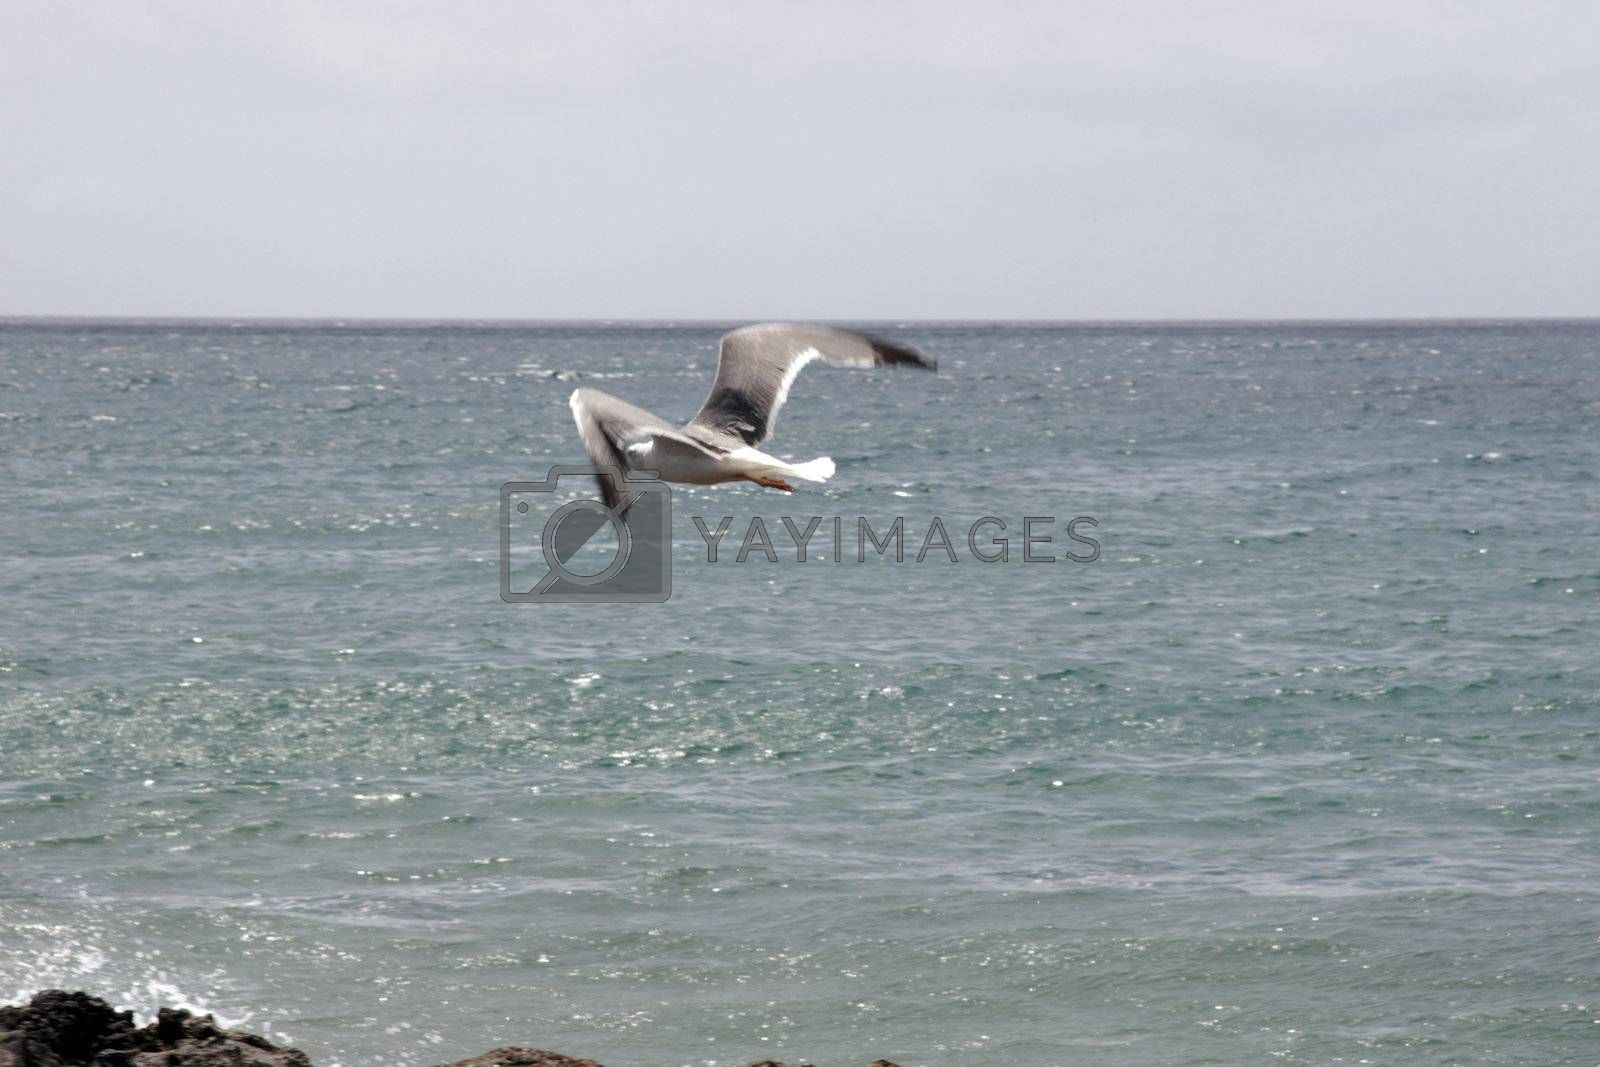 a seagull in flight over the sea